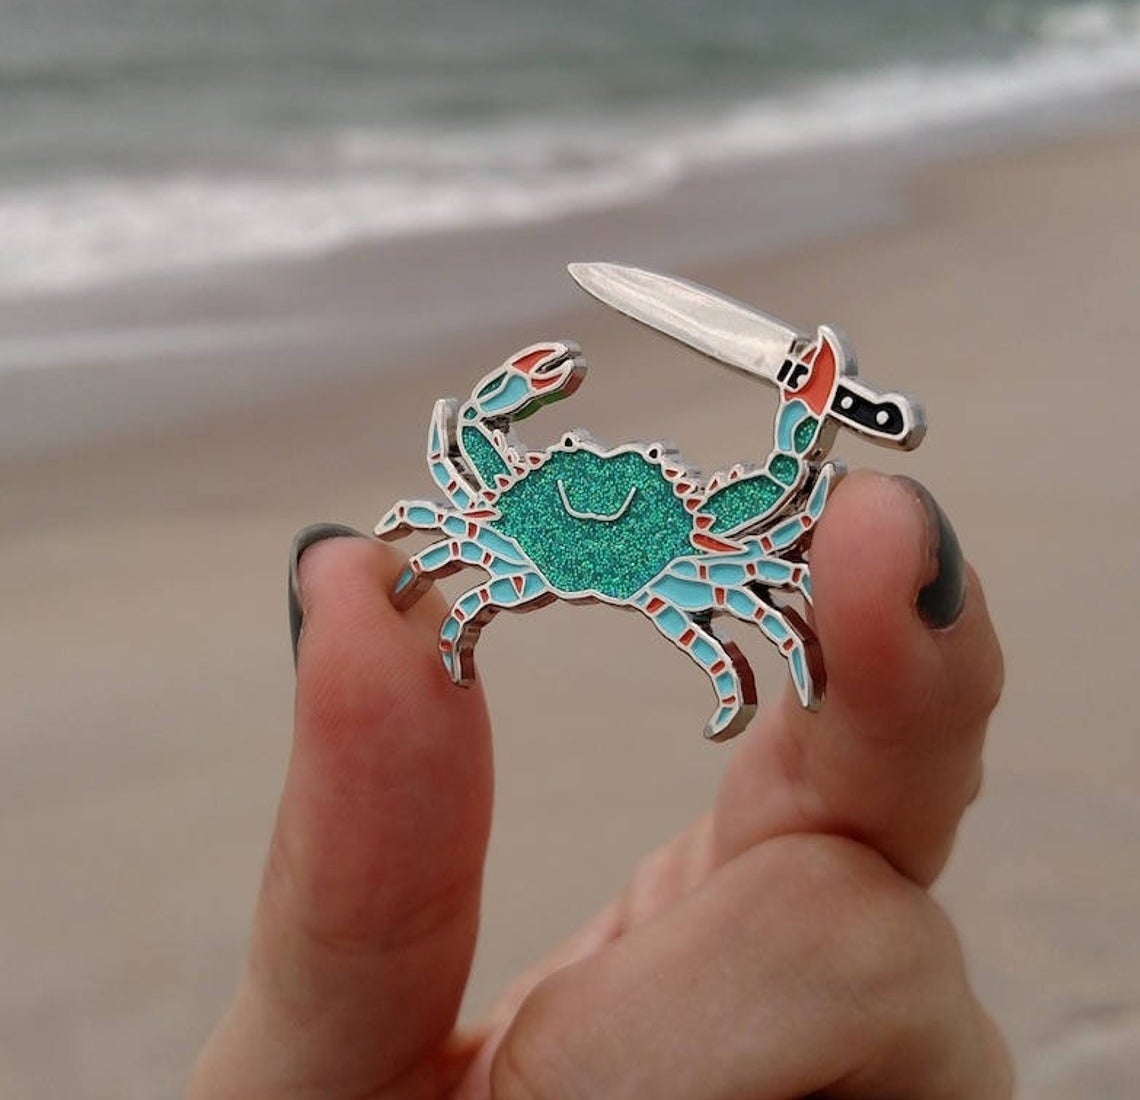 A person holding the enamel Stabby Crab pin.